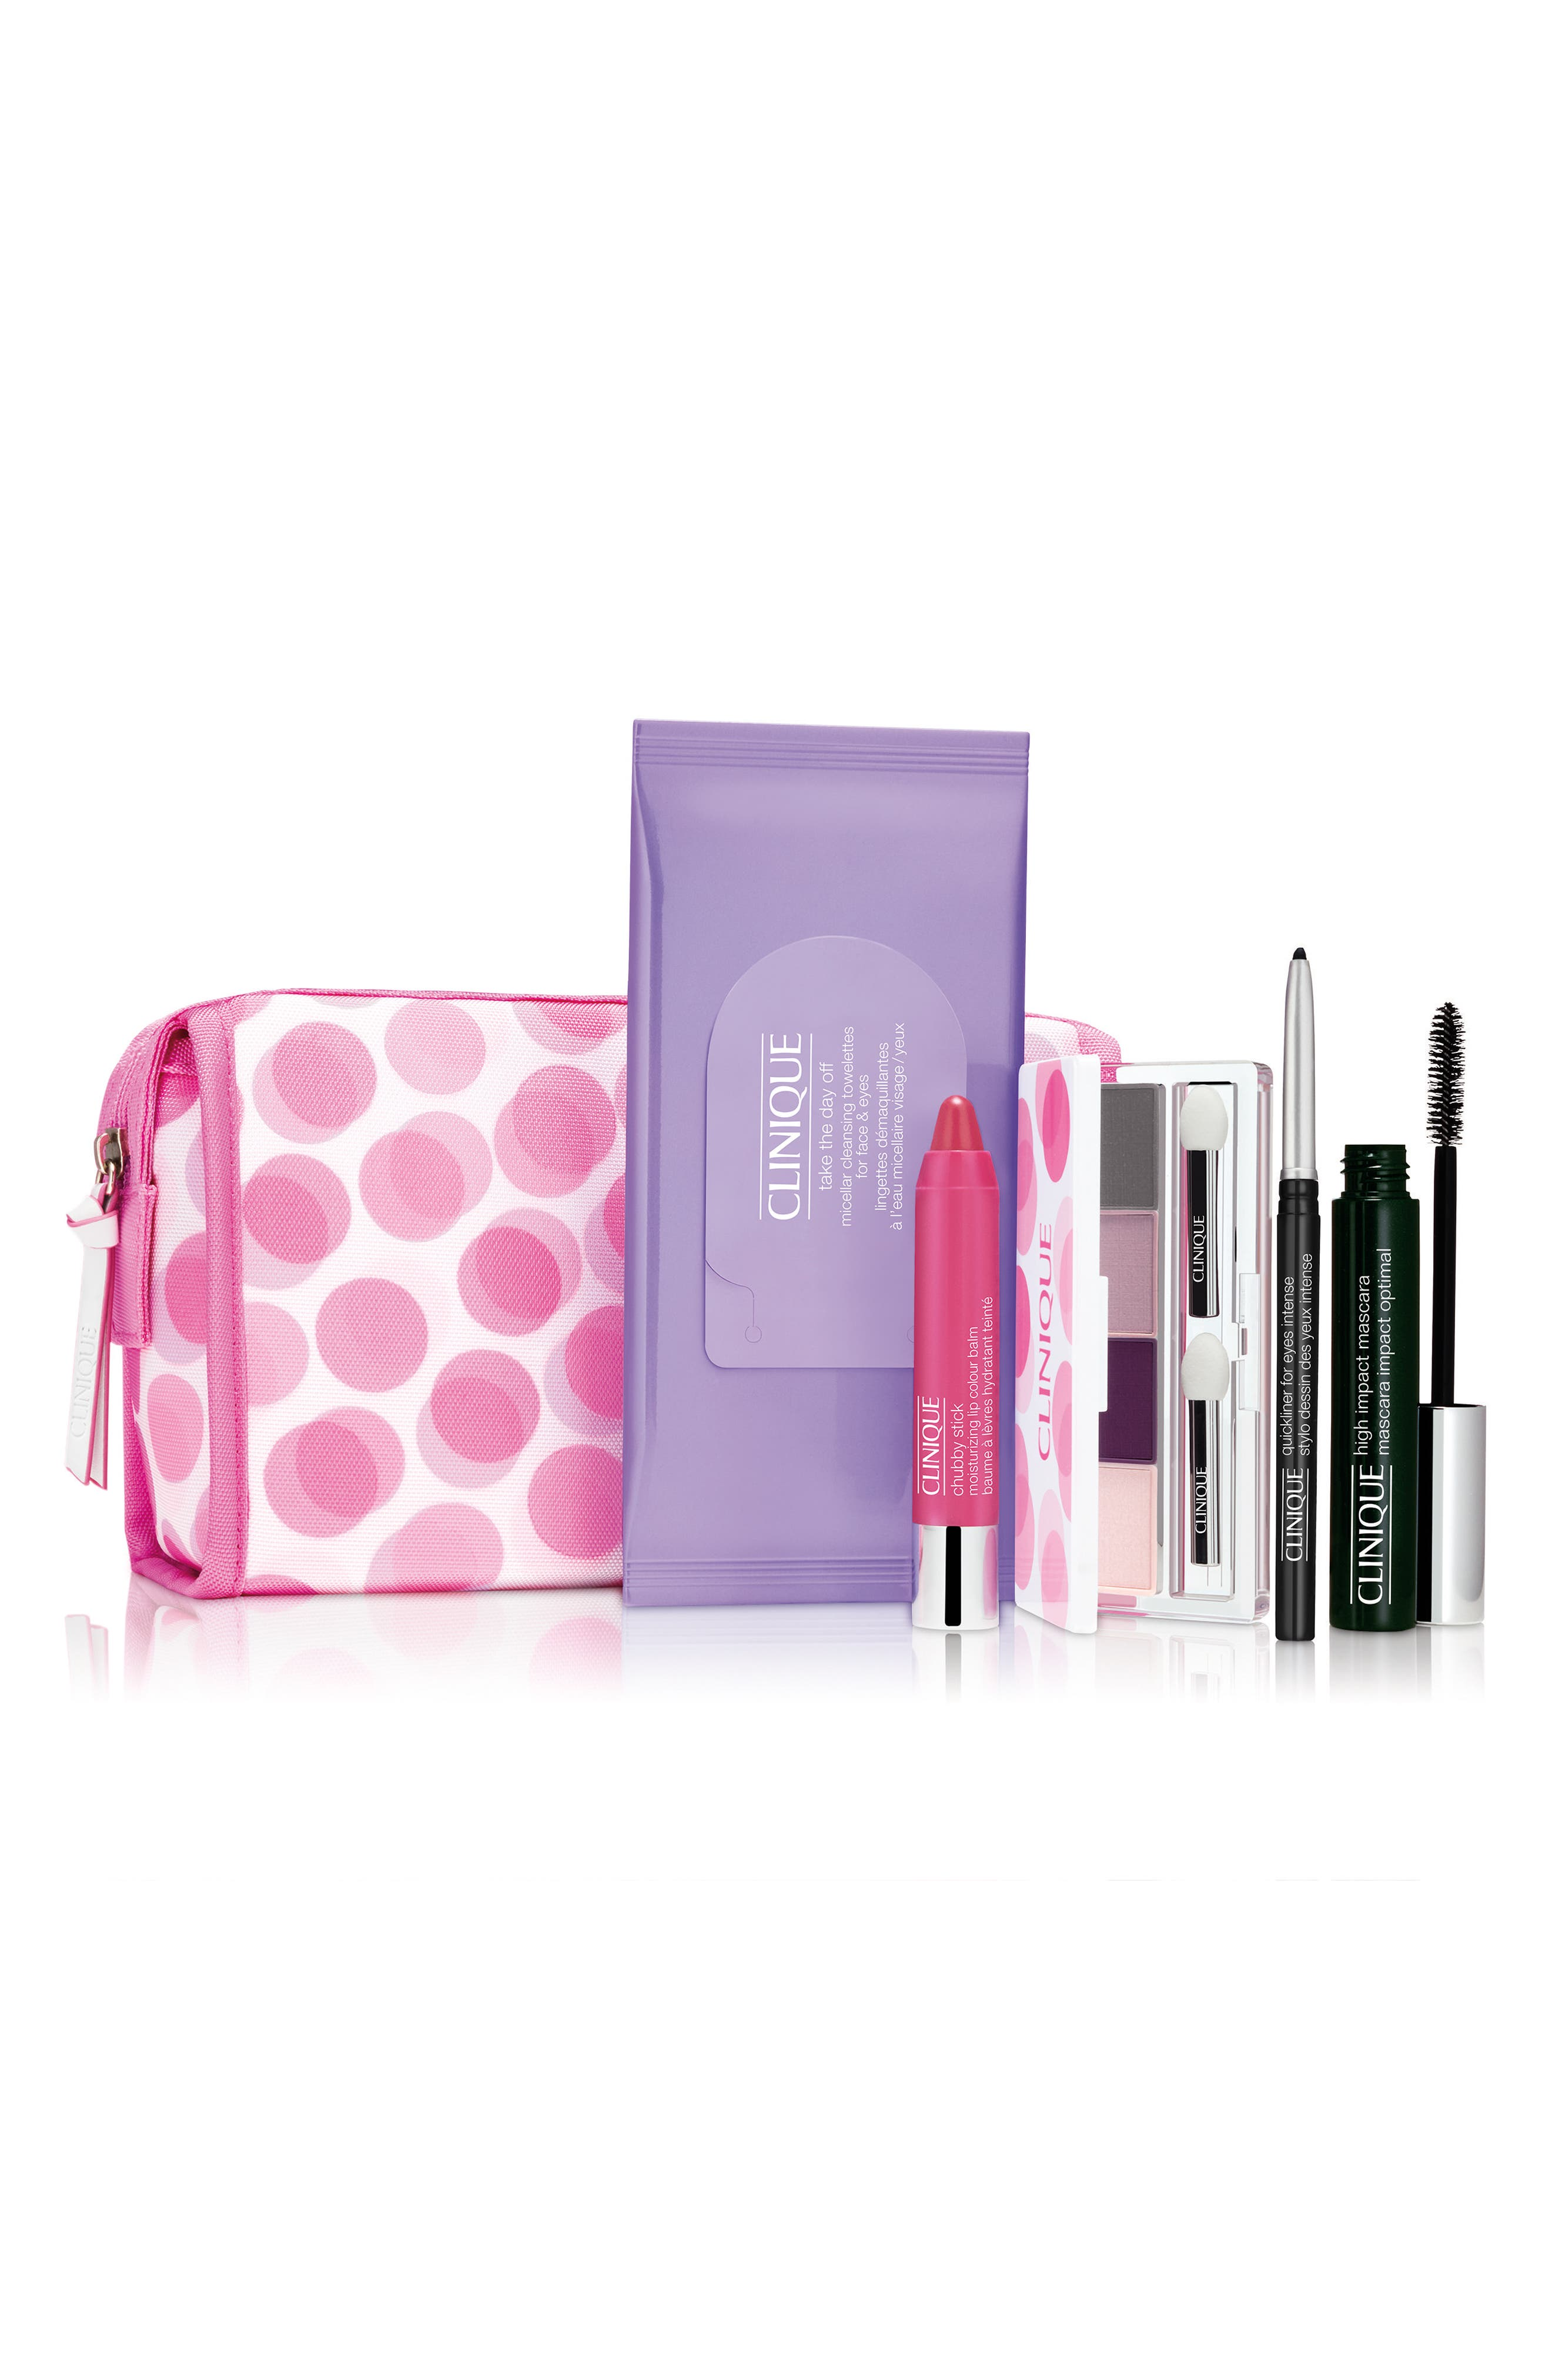 Main Image - Clinique Spring Into Color Set (Limited Edition) ($81.50 Value)